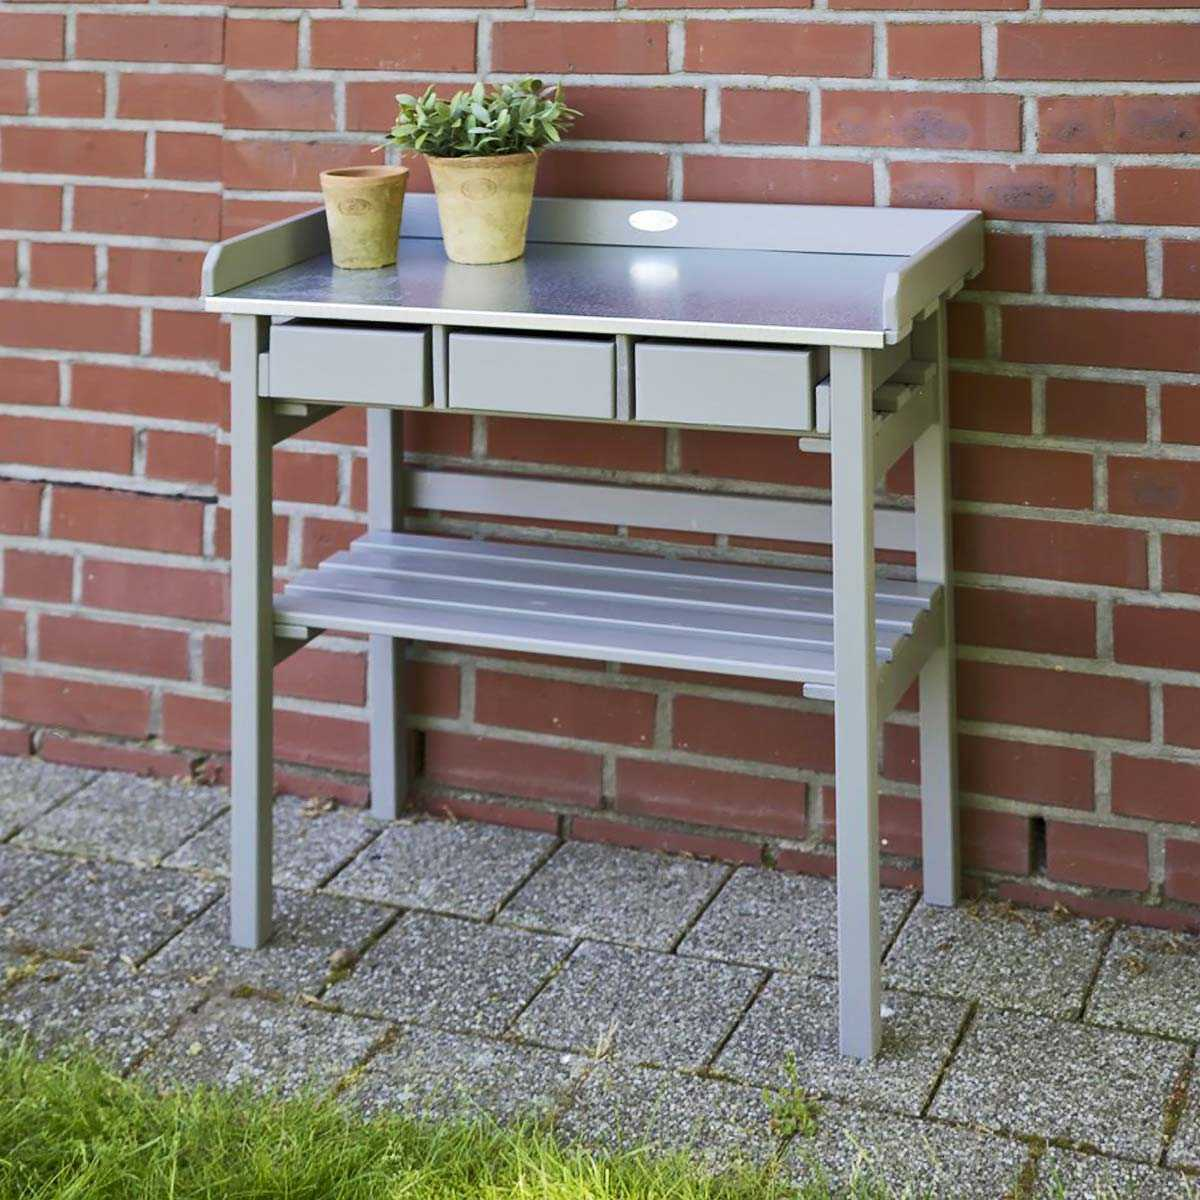 Best mobilier de jardin en zinc pictures awesome for But mobilier de jardin